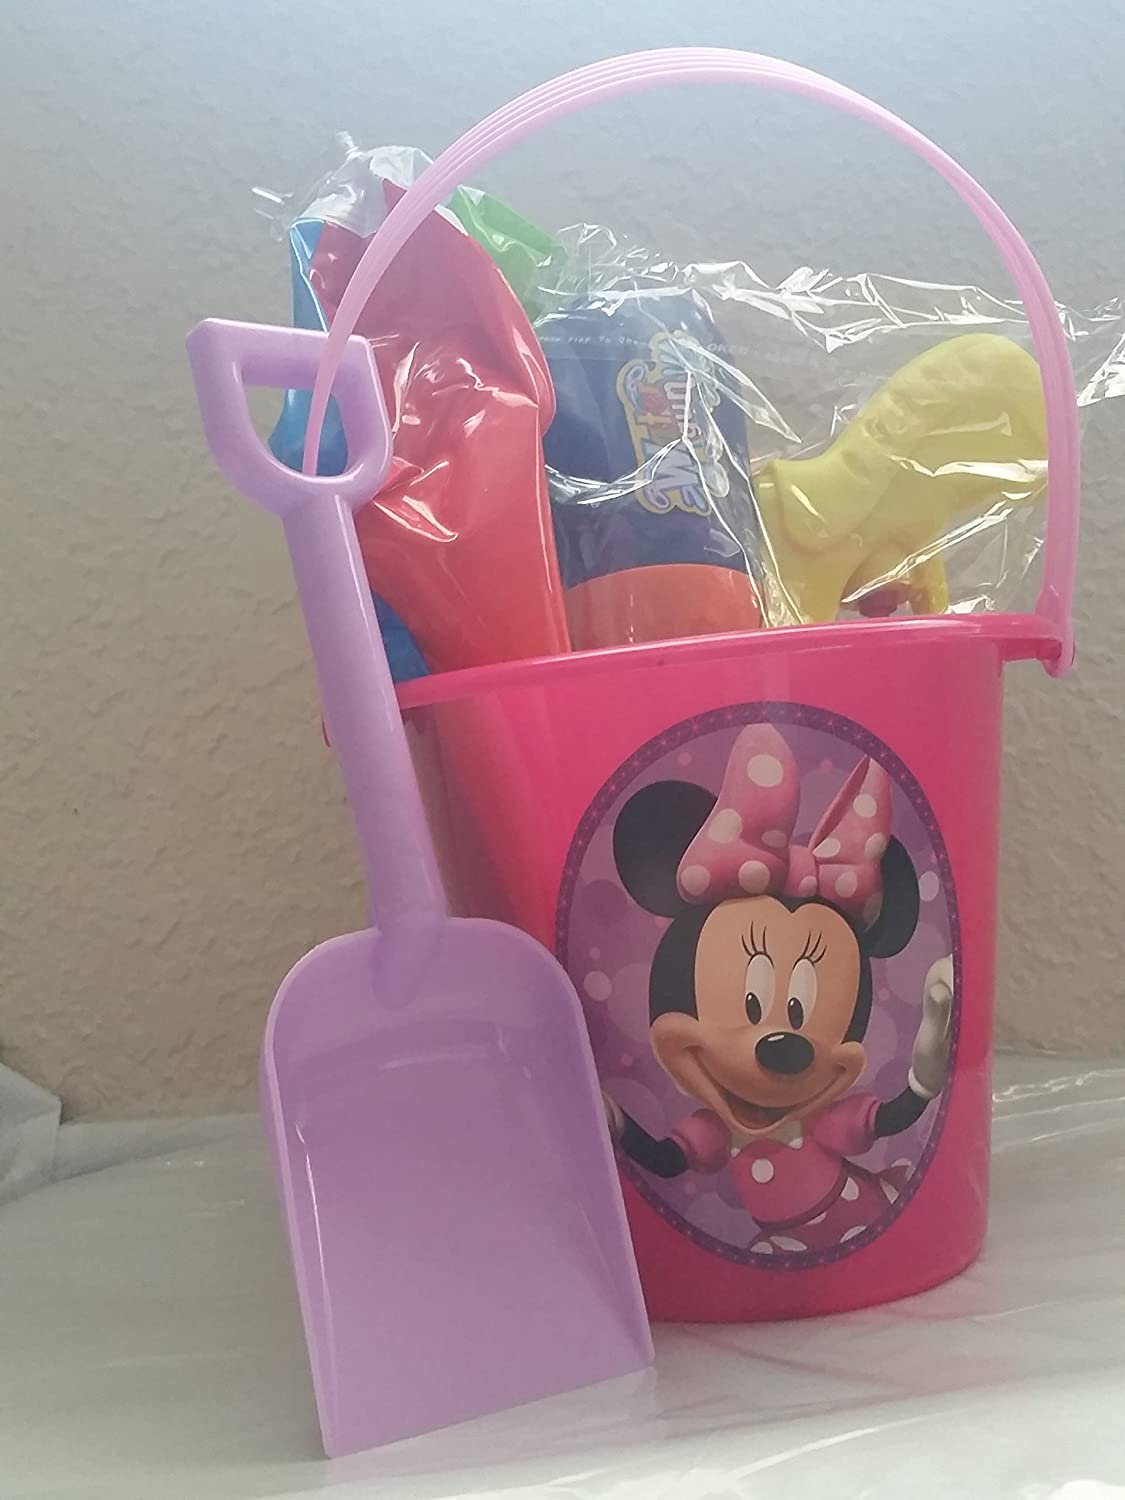 4 3//4 Inch Disney Minnie Mouse Pink Sand Bucket with Teal Shovel for Kids